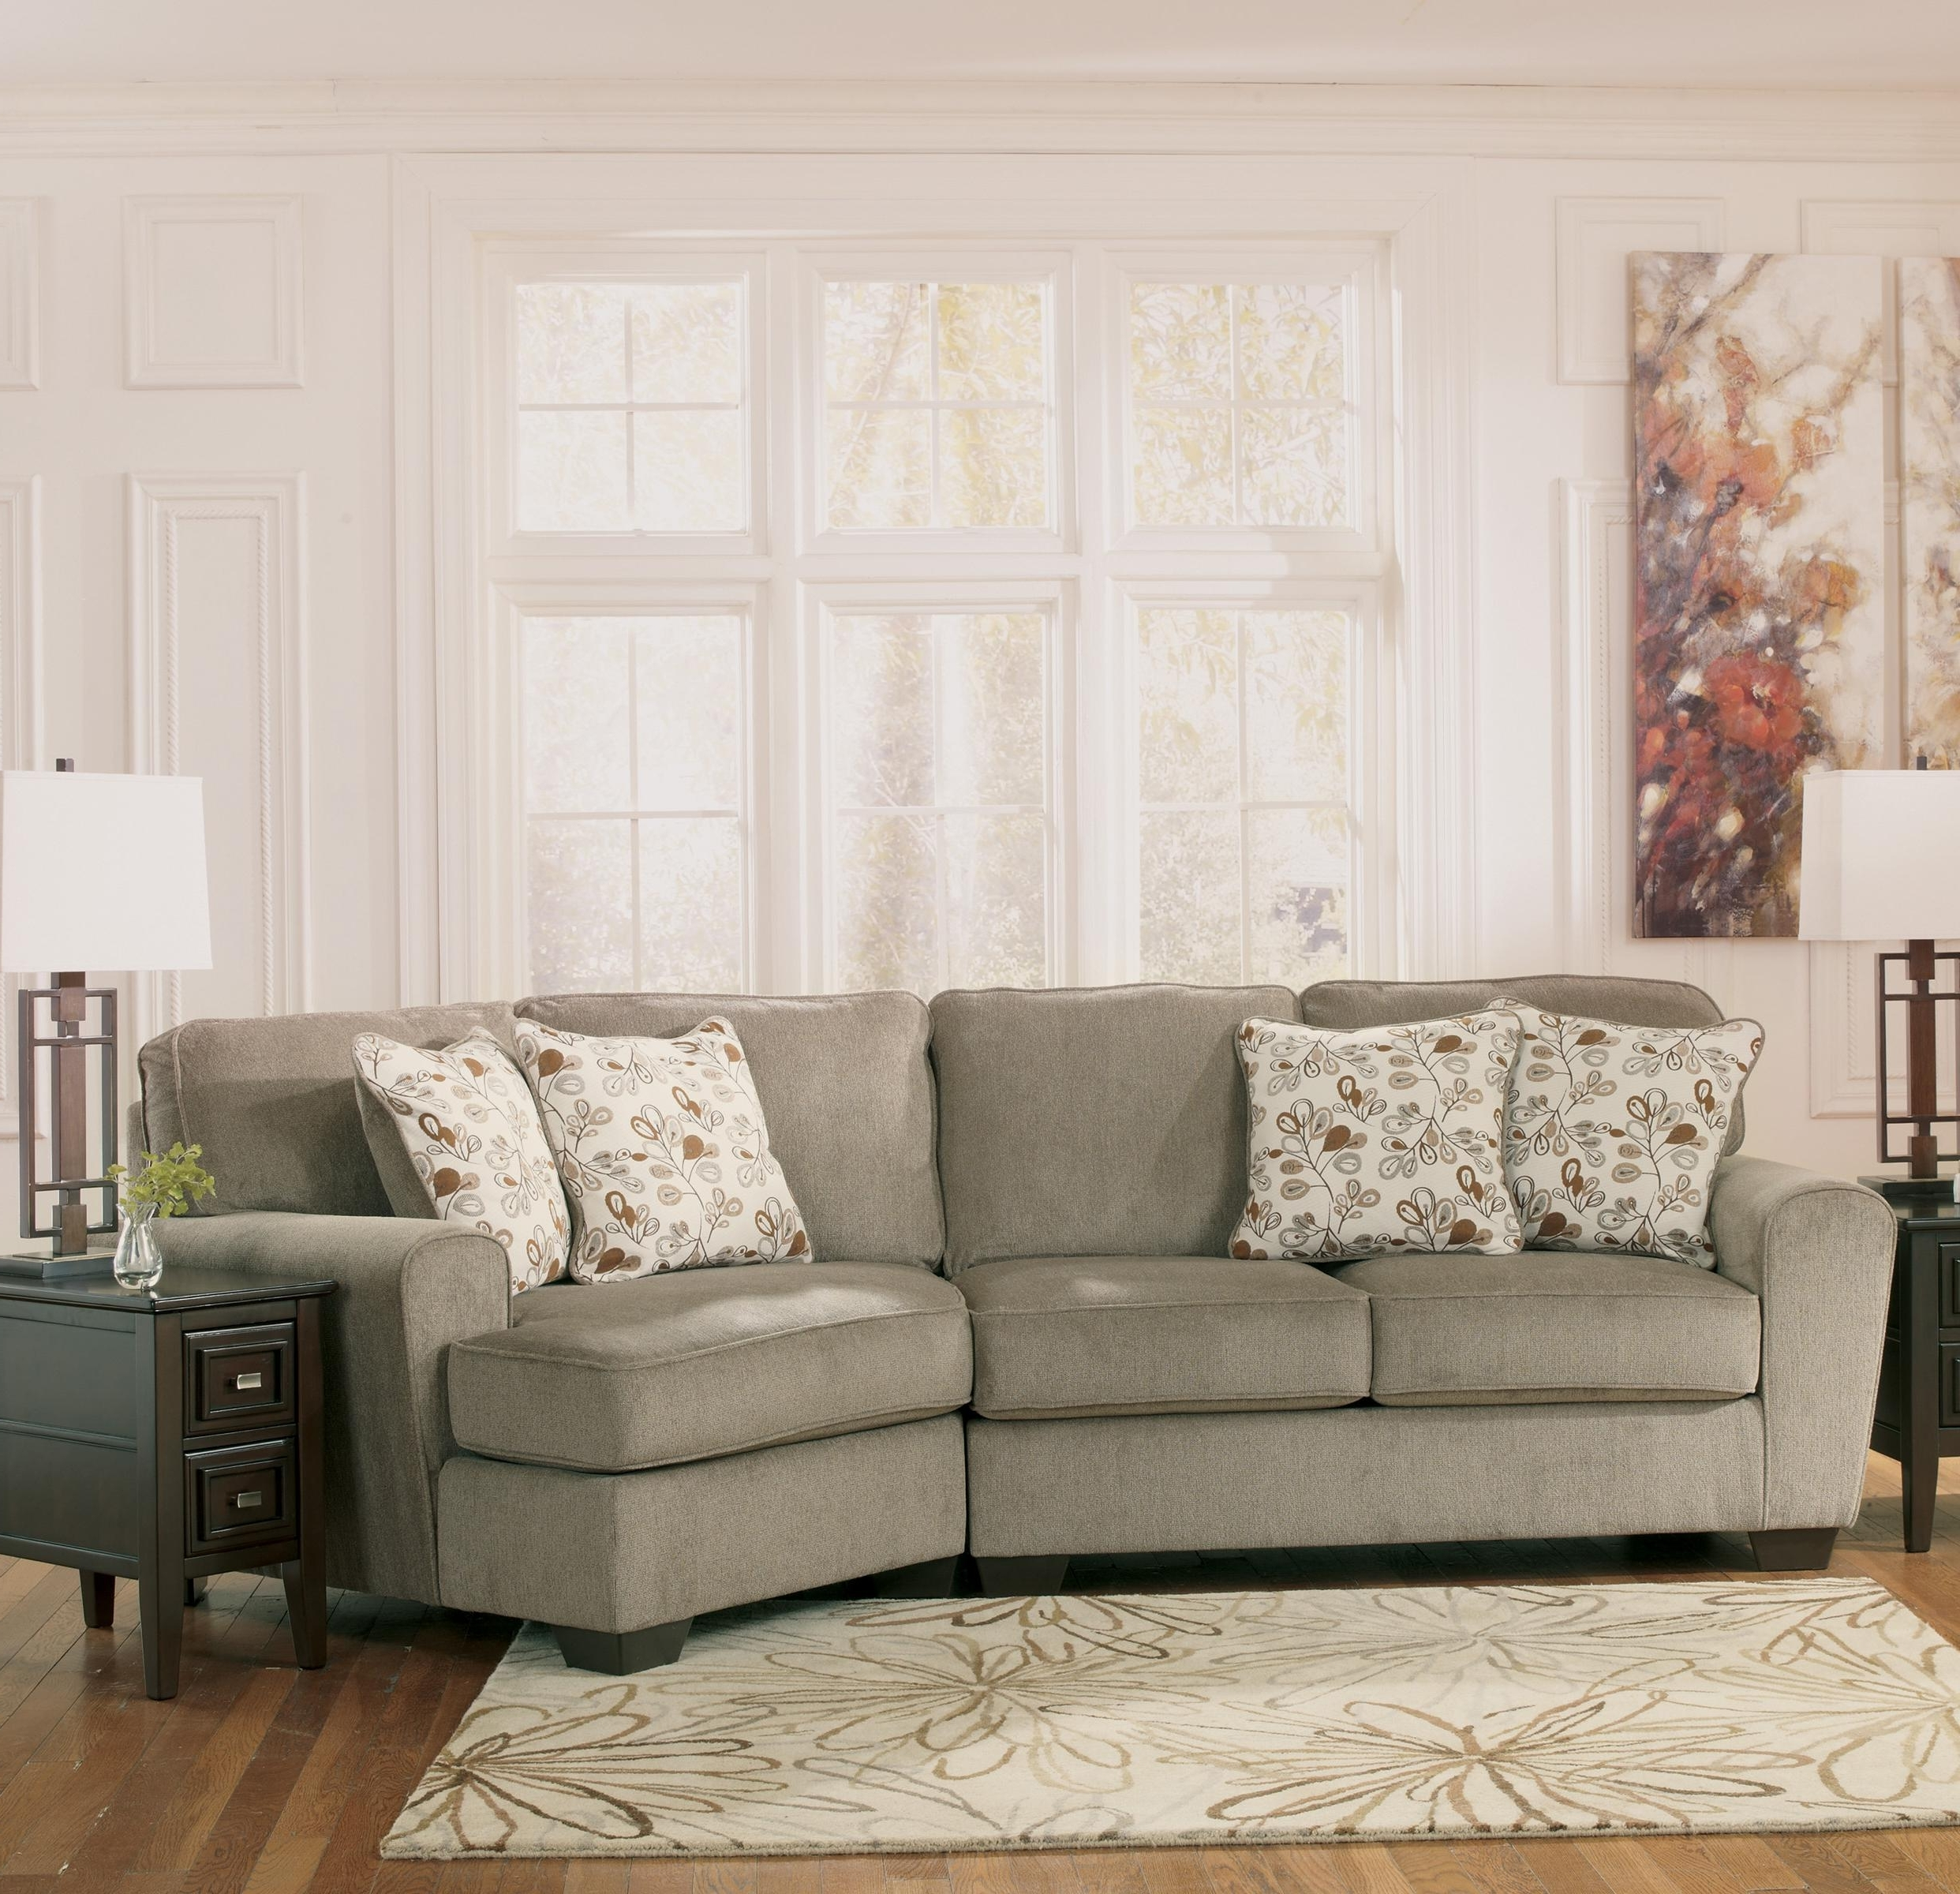 Ashley Furniture Patola Park – Patina 2 Piece Sectional With Right For Popular Sectional Sofas With Cuddler (View 1 of 20)